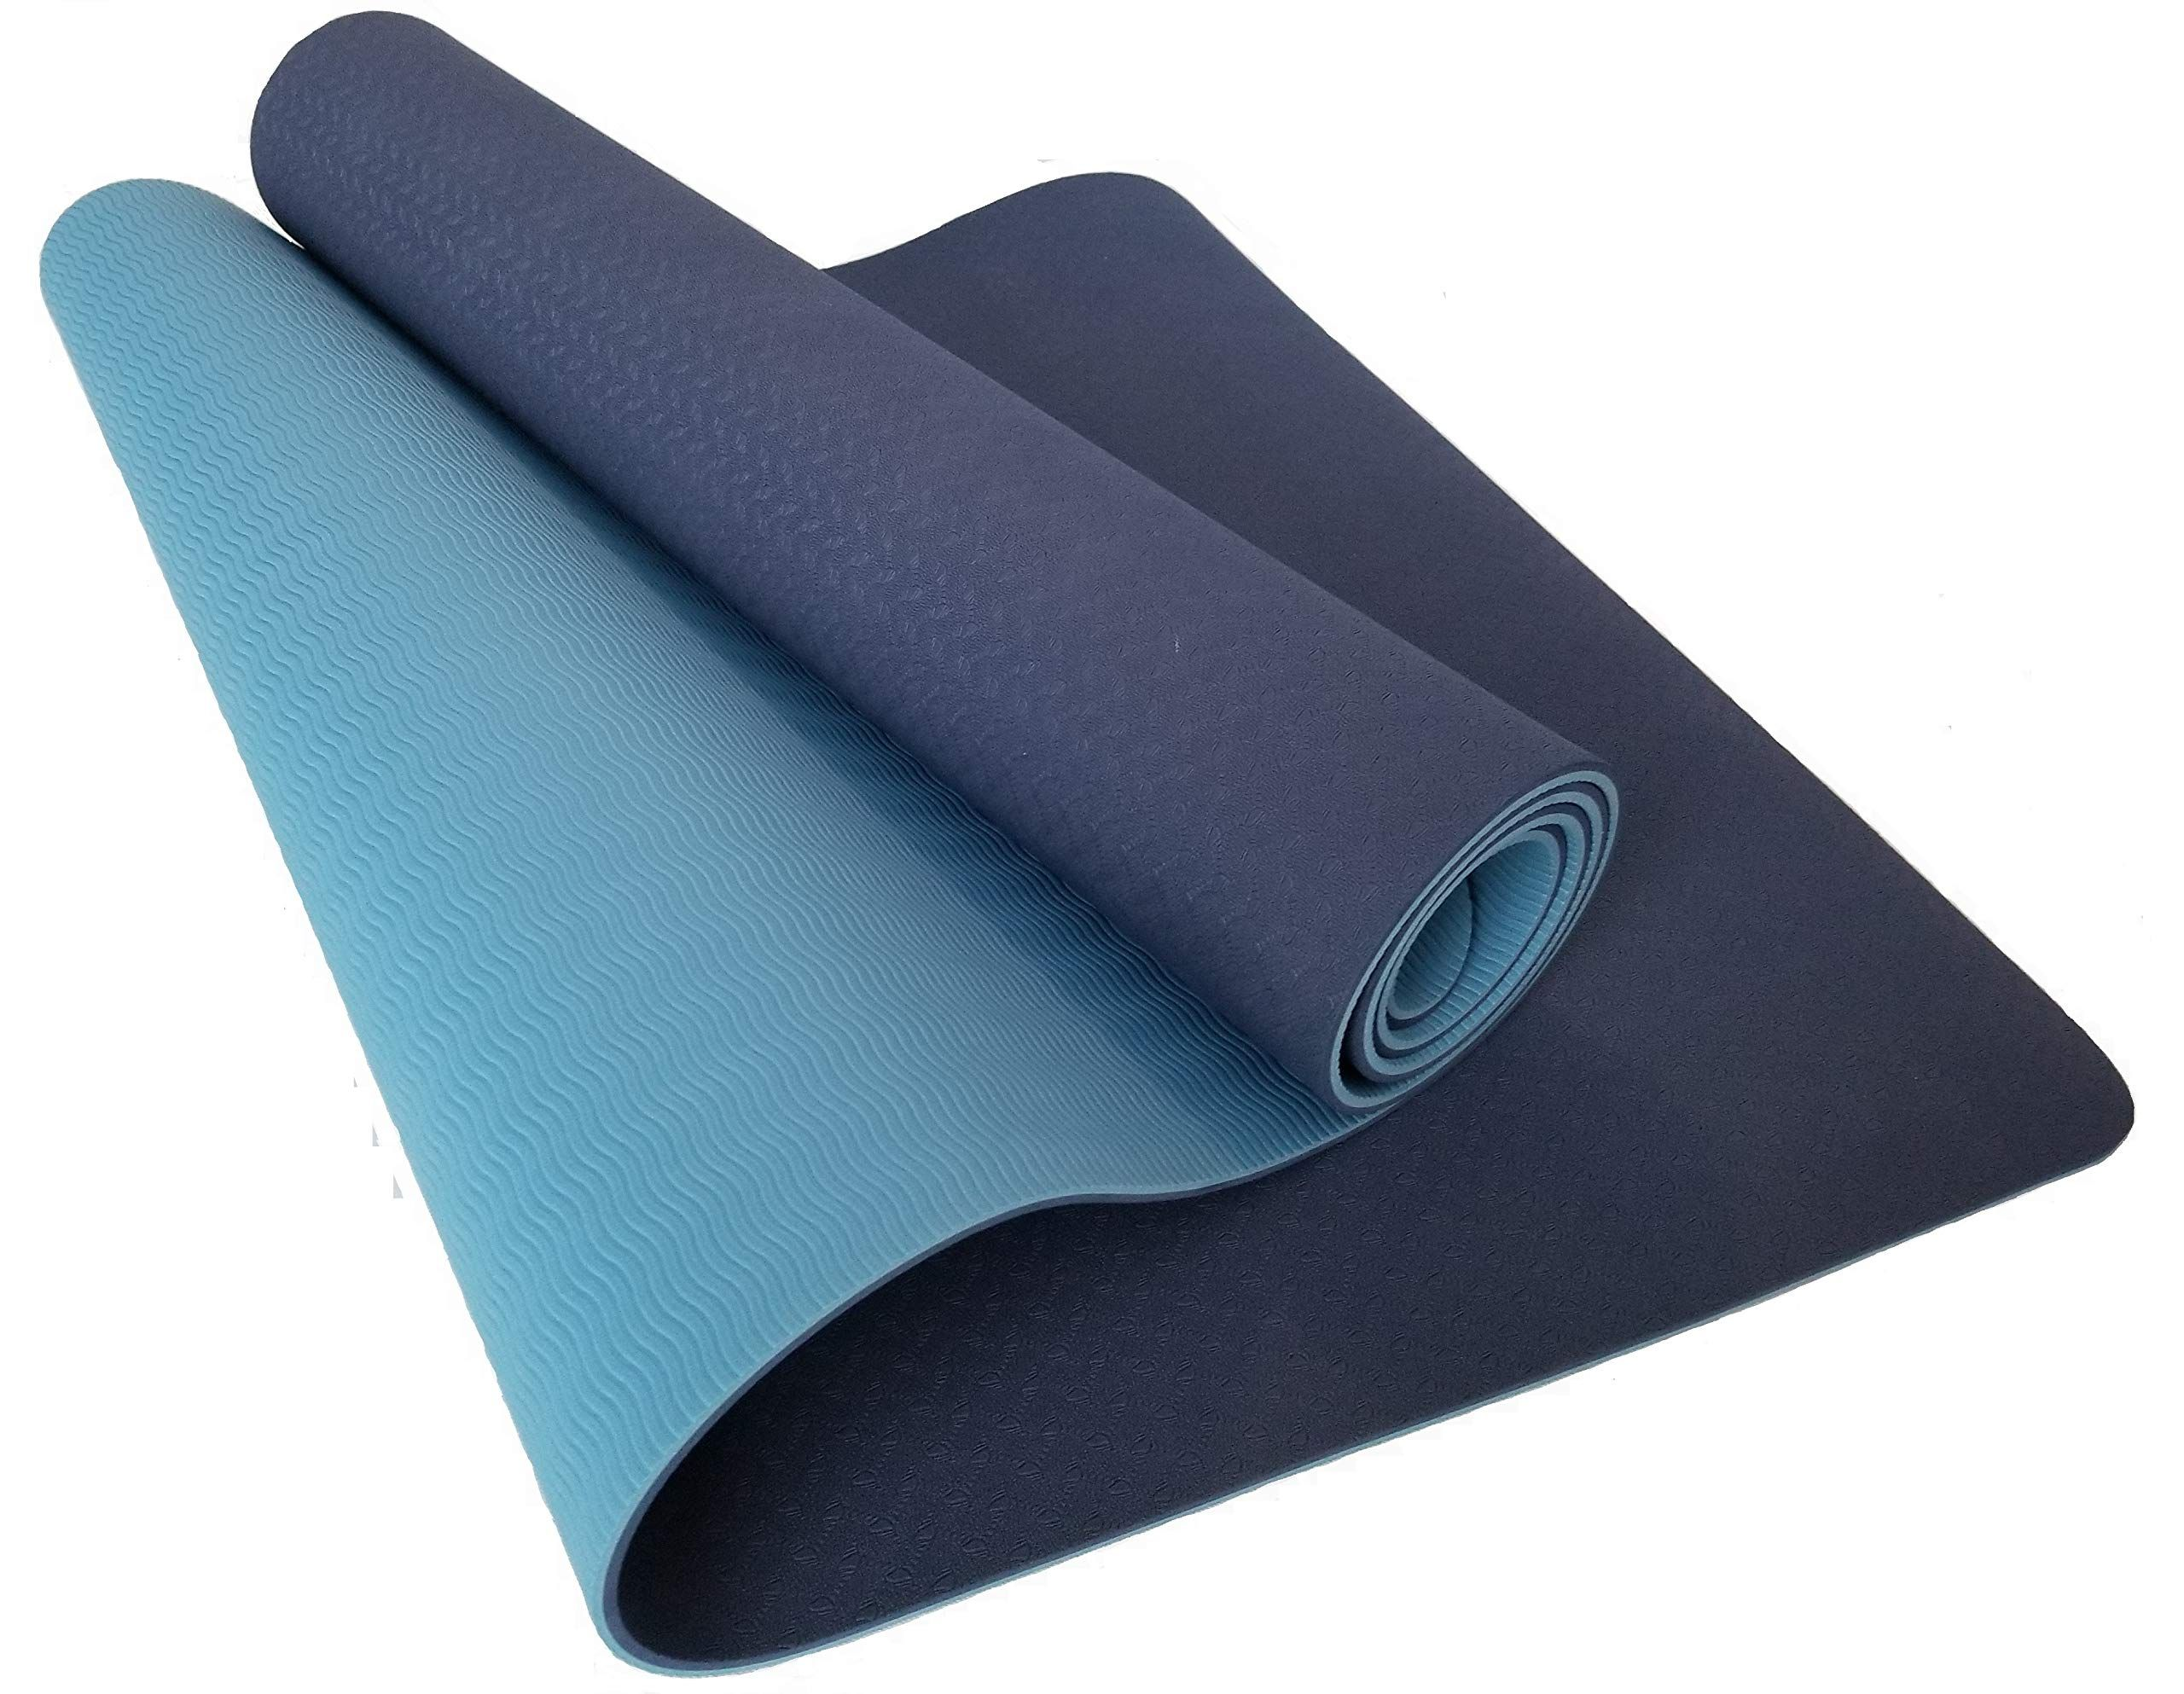 Total Balance Pro Yoga Mat For Yoga Pilates At Home Or In The Studio Light And Non Slip Designed For Comfort And Contr Pilates At Home Yoga Mat Yoga Pilates